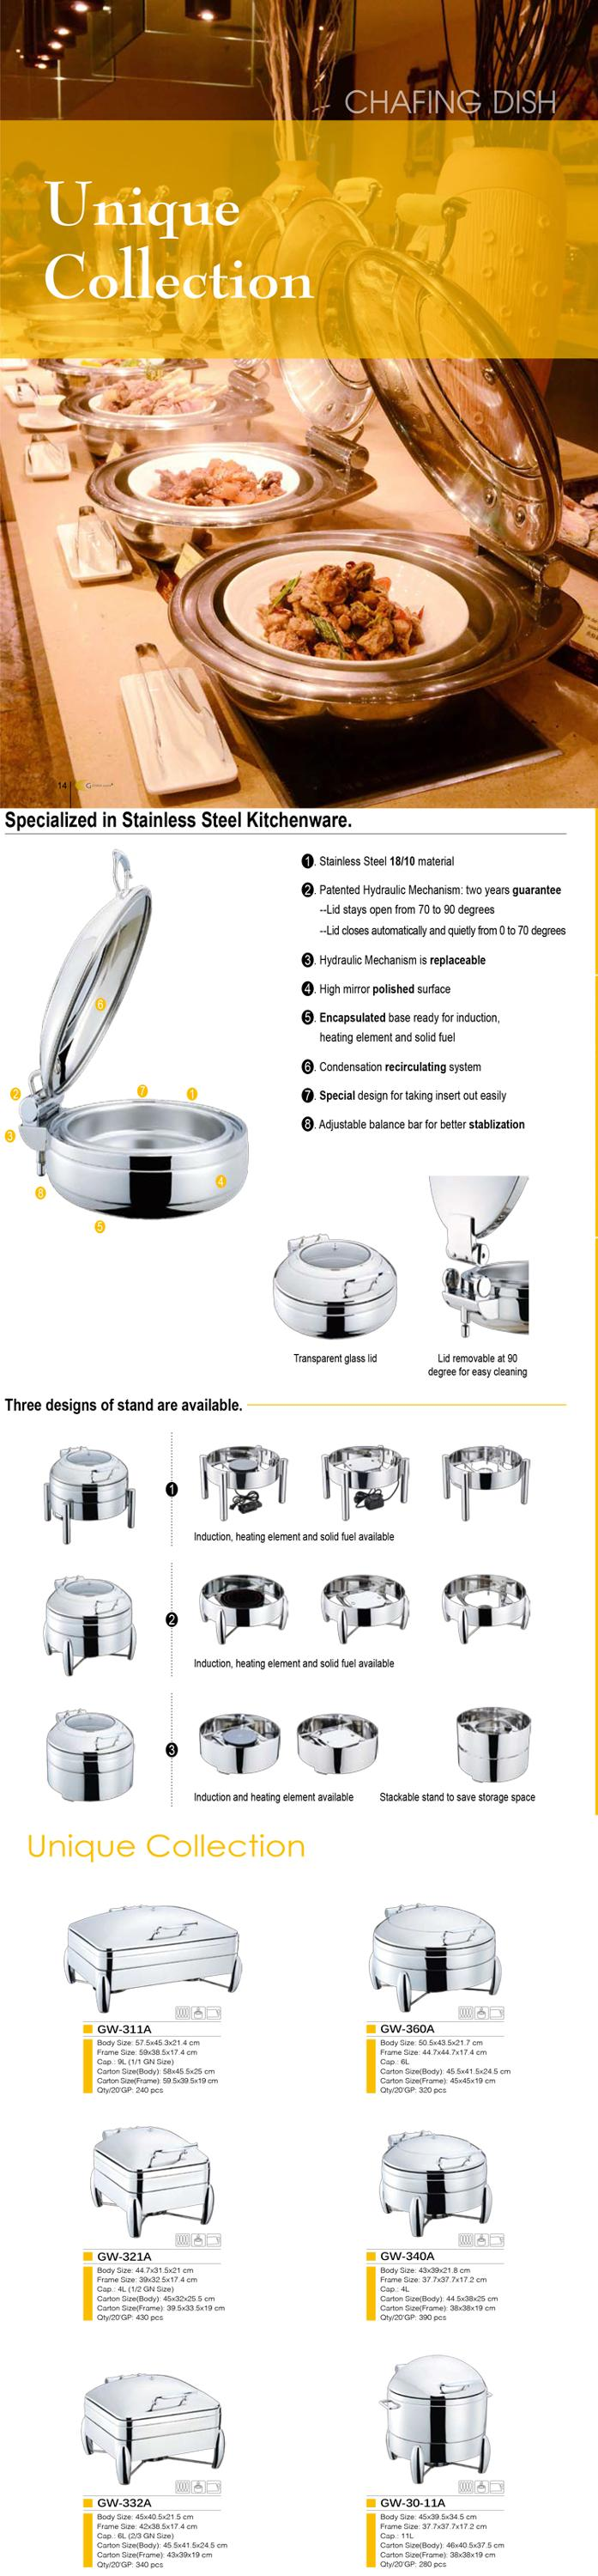 GW-32A-GL 6L Competitive Price High Reflective hydraulic induction series chafing dish